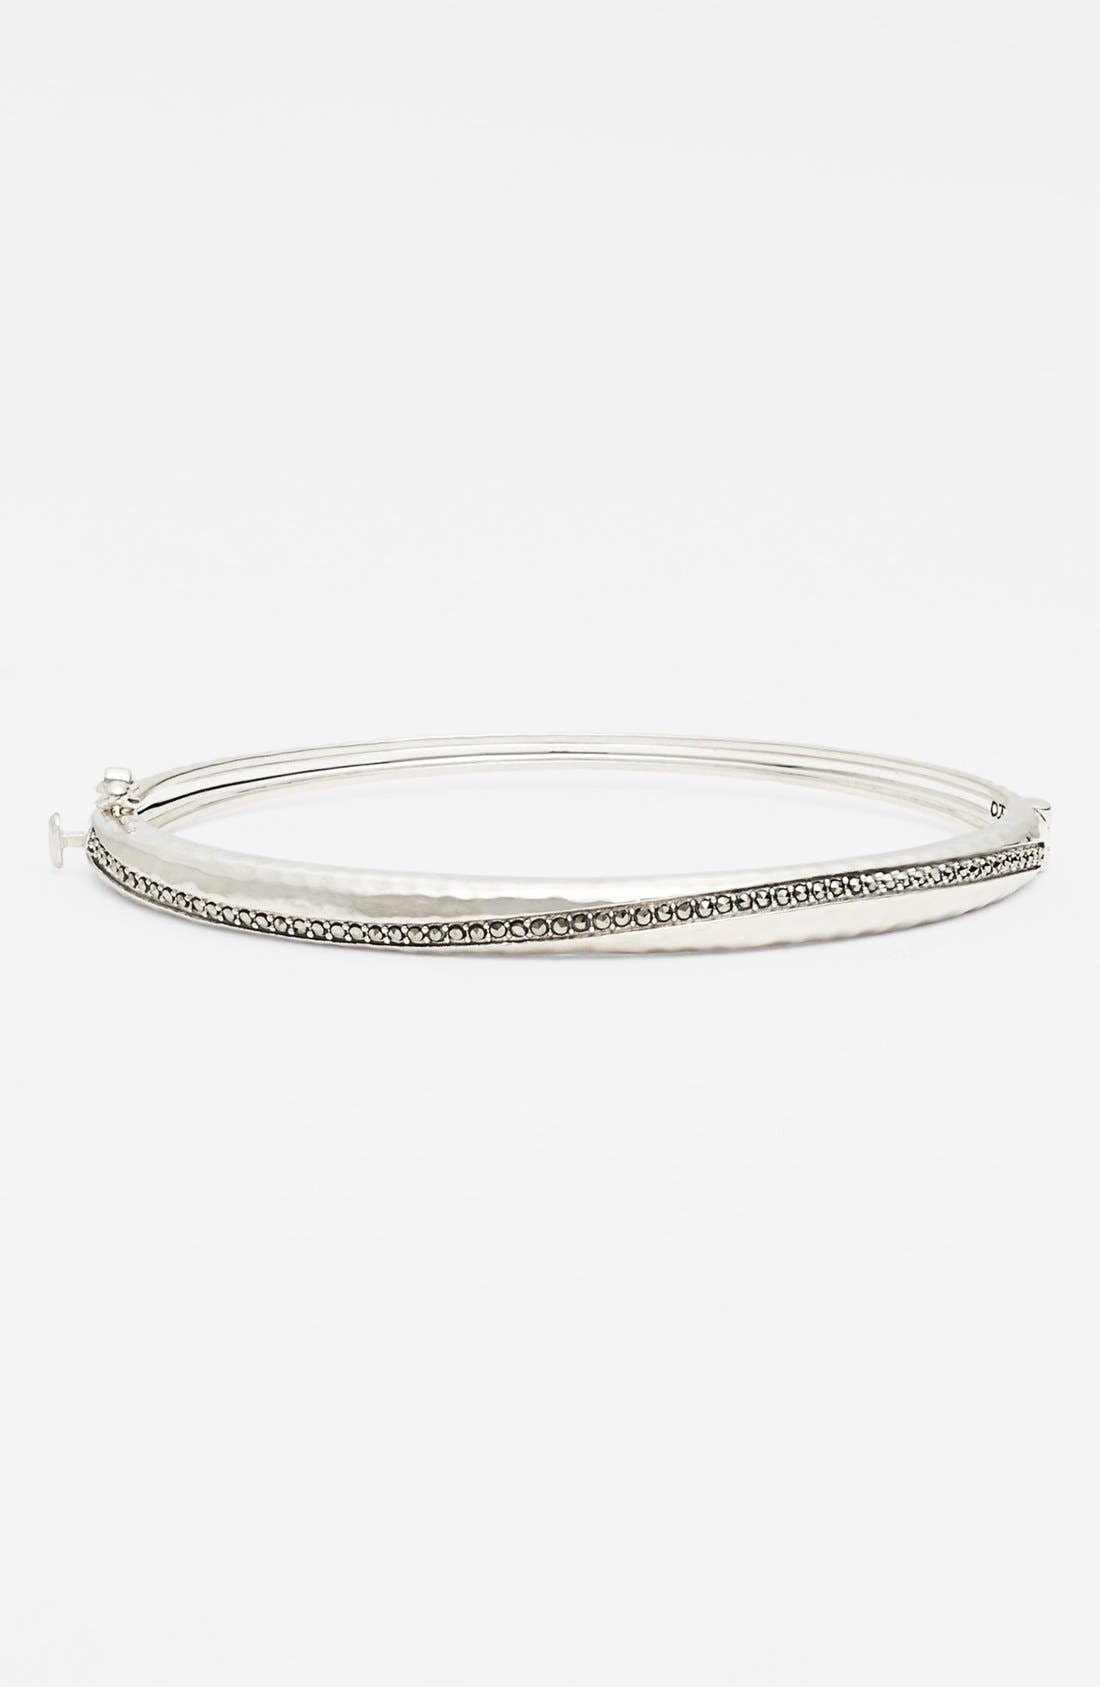 Alternate Image 1 Selected - Judith Jack 'Halo' Hinged Bangle